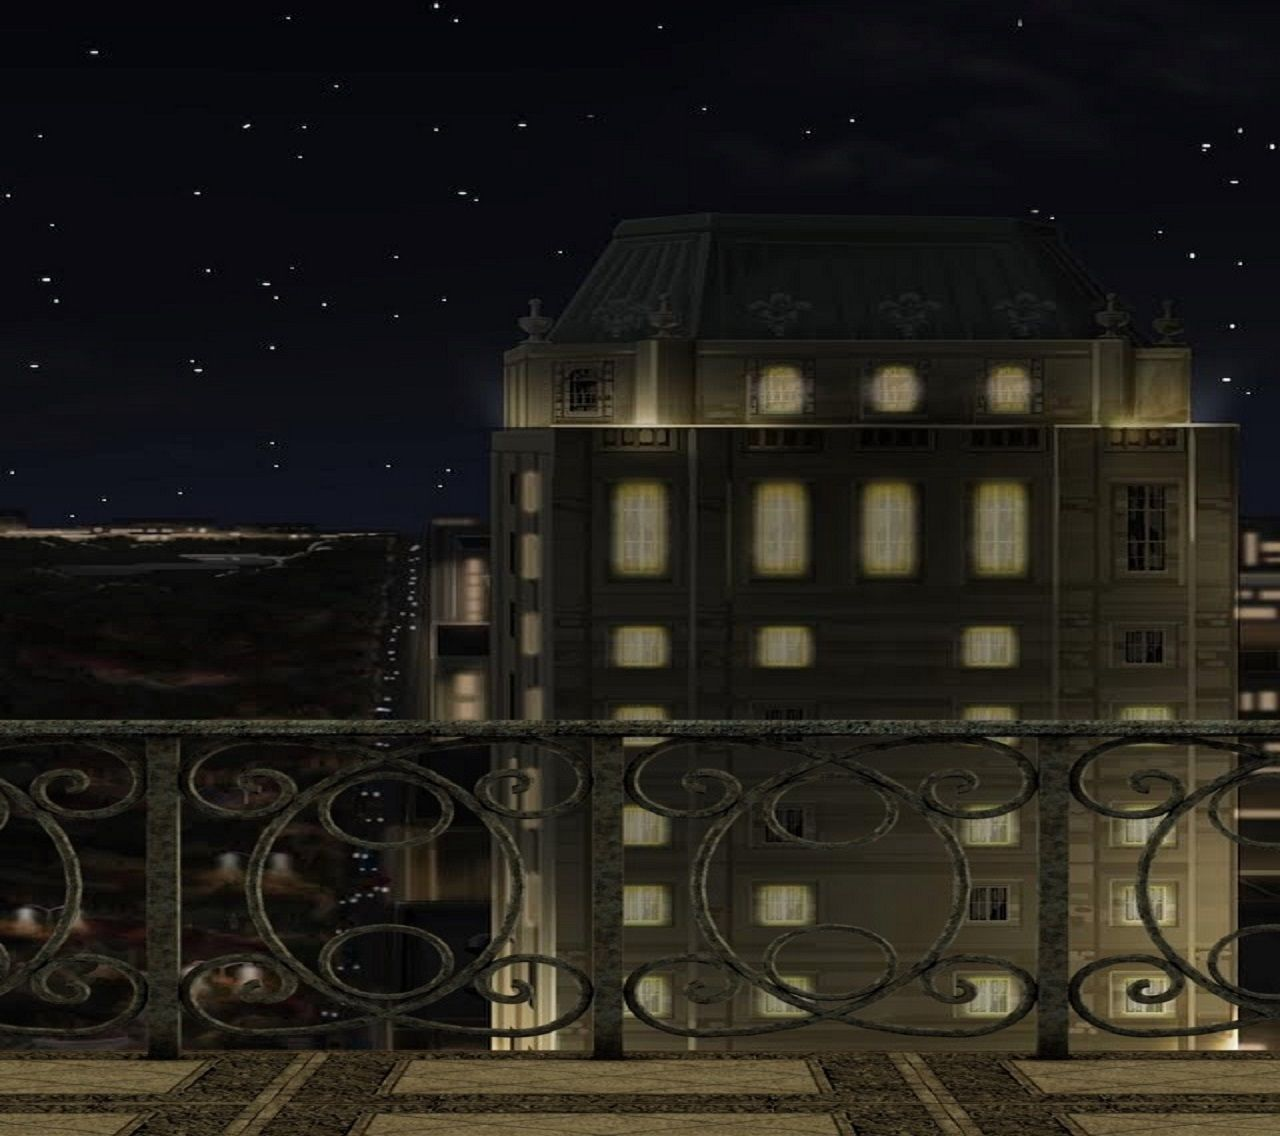 Apartment Building At Night ext. apartment balcony night med #episodeinteractive #episode size